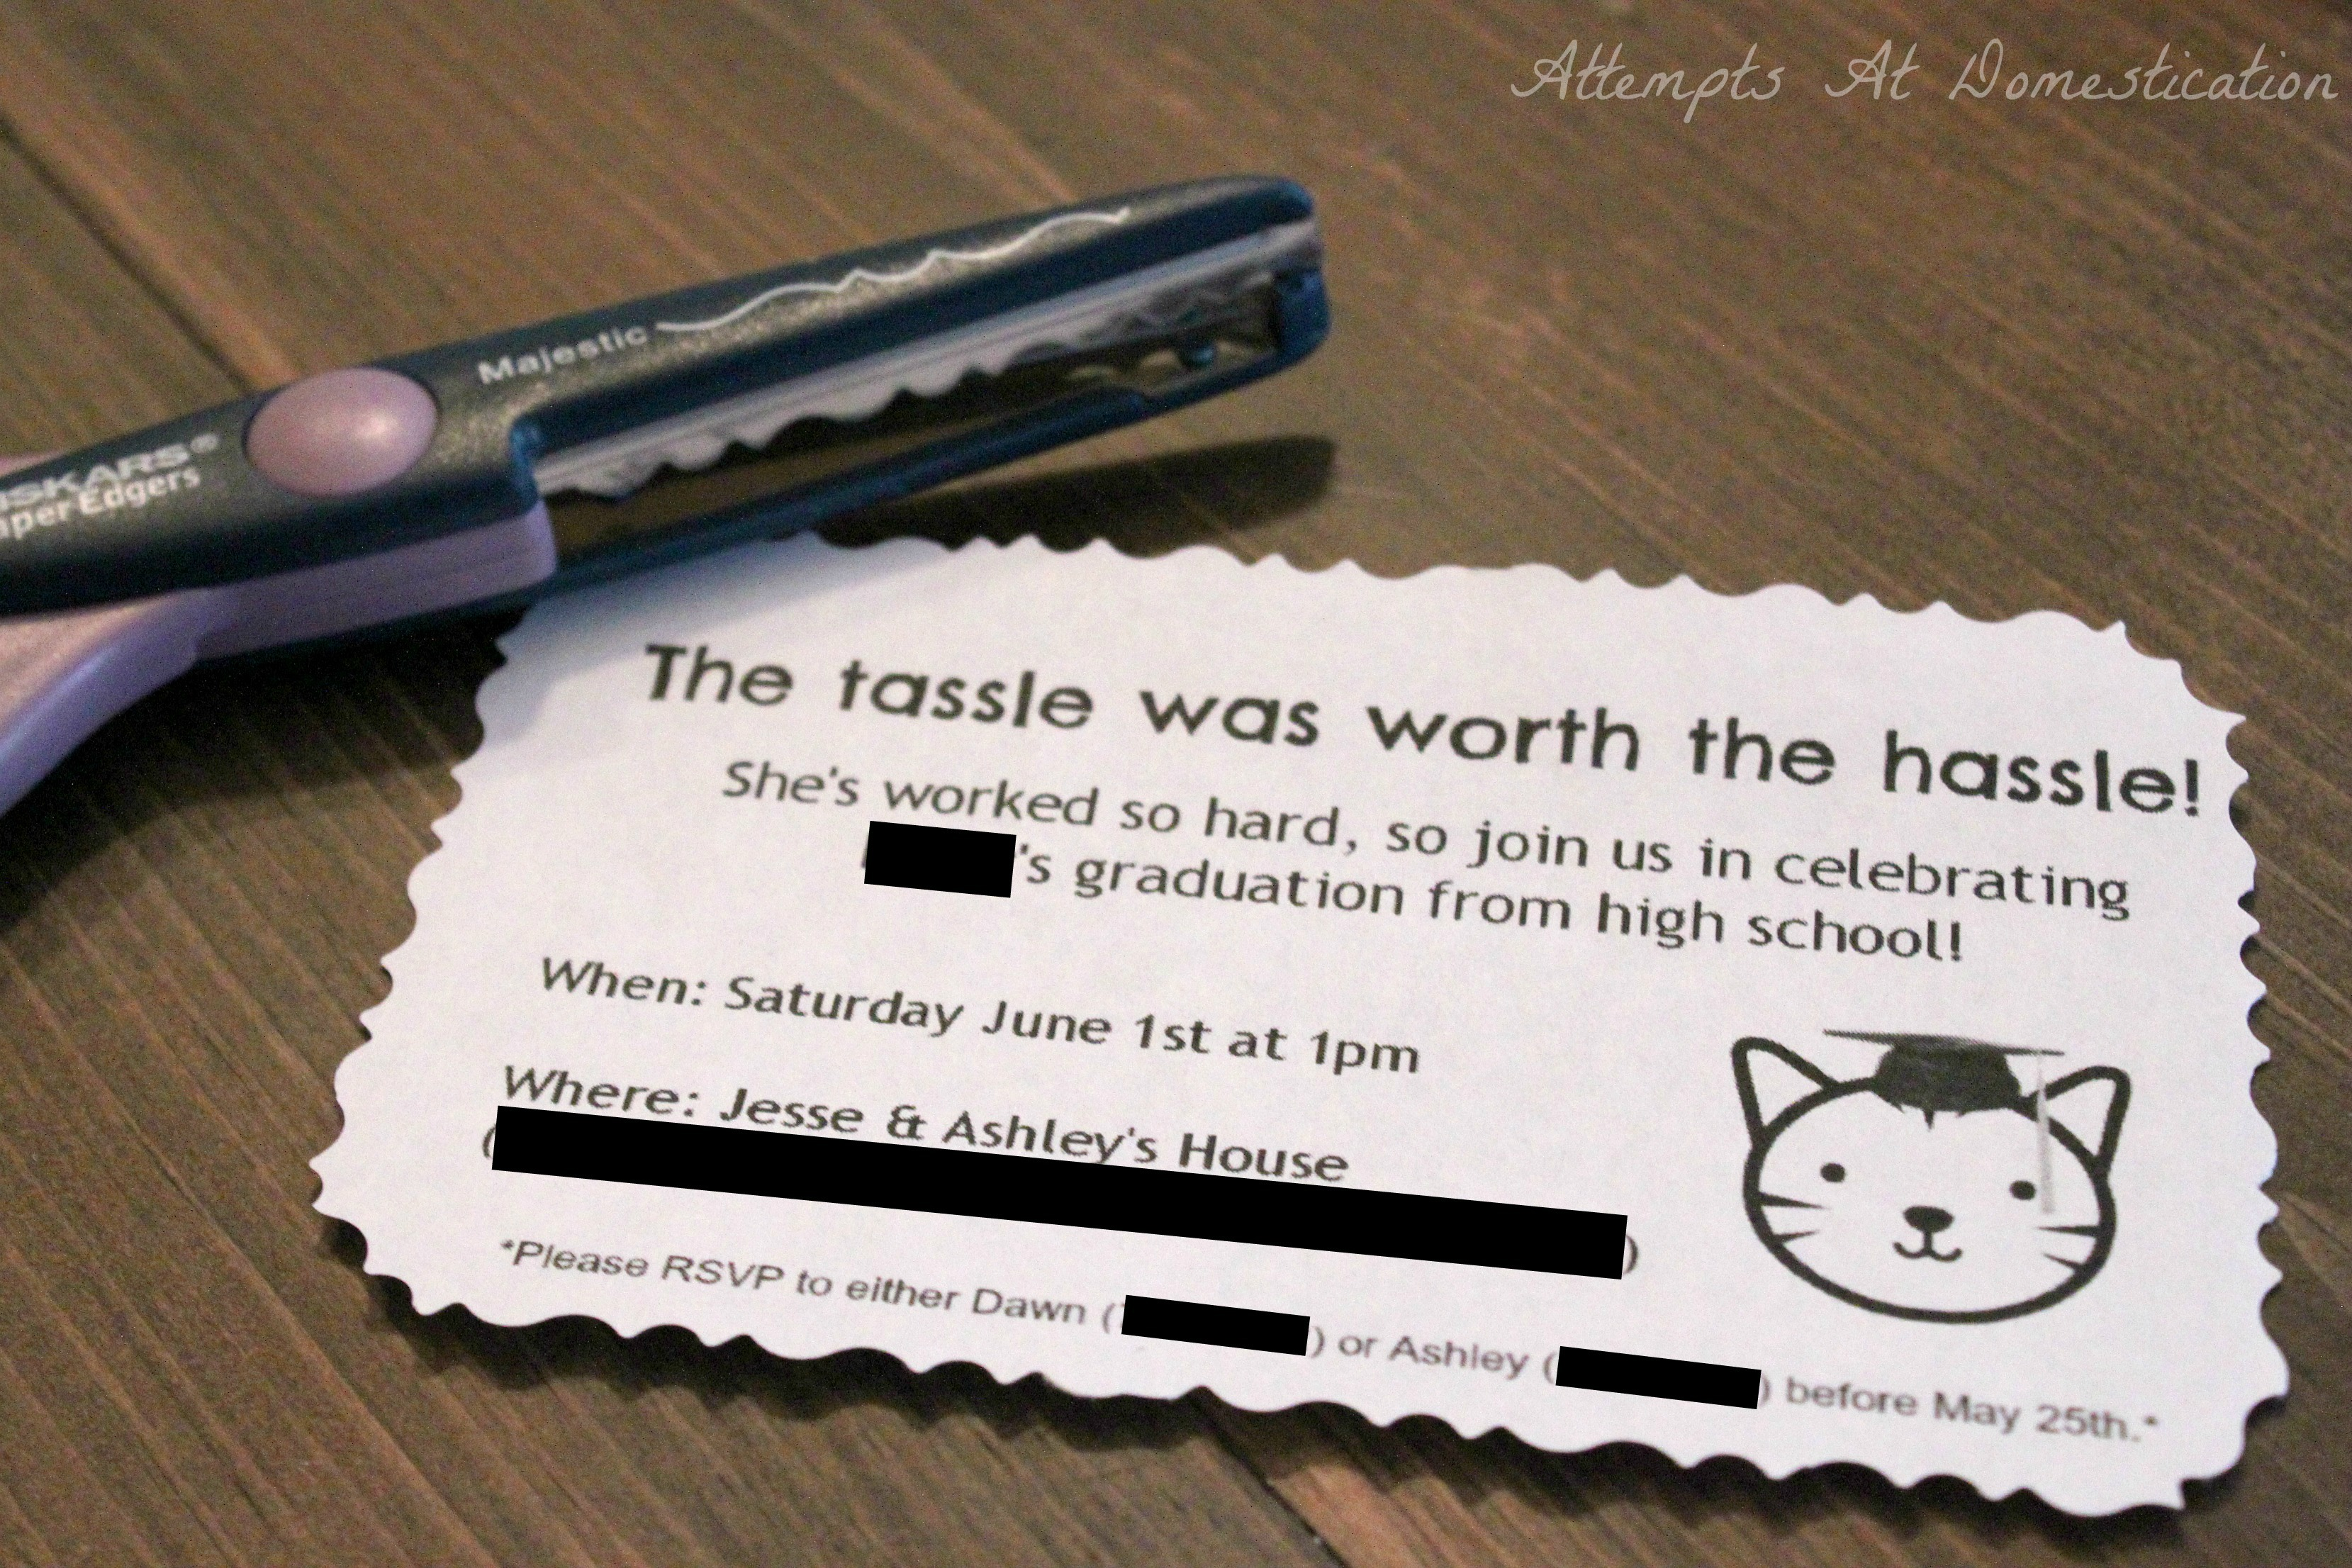 Graduation Reception Invitation Wording for nice invitations design